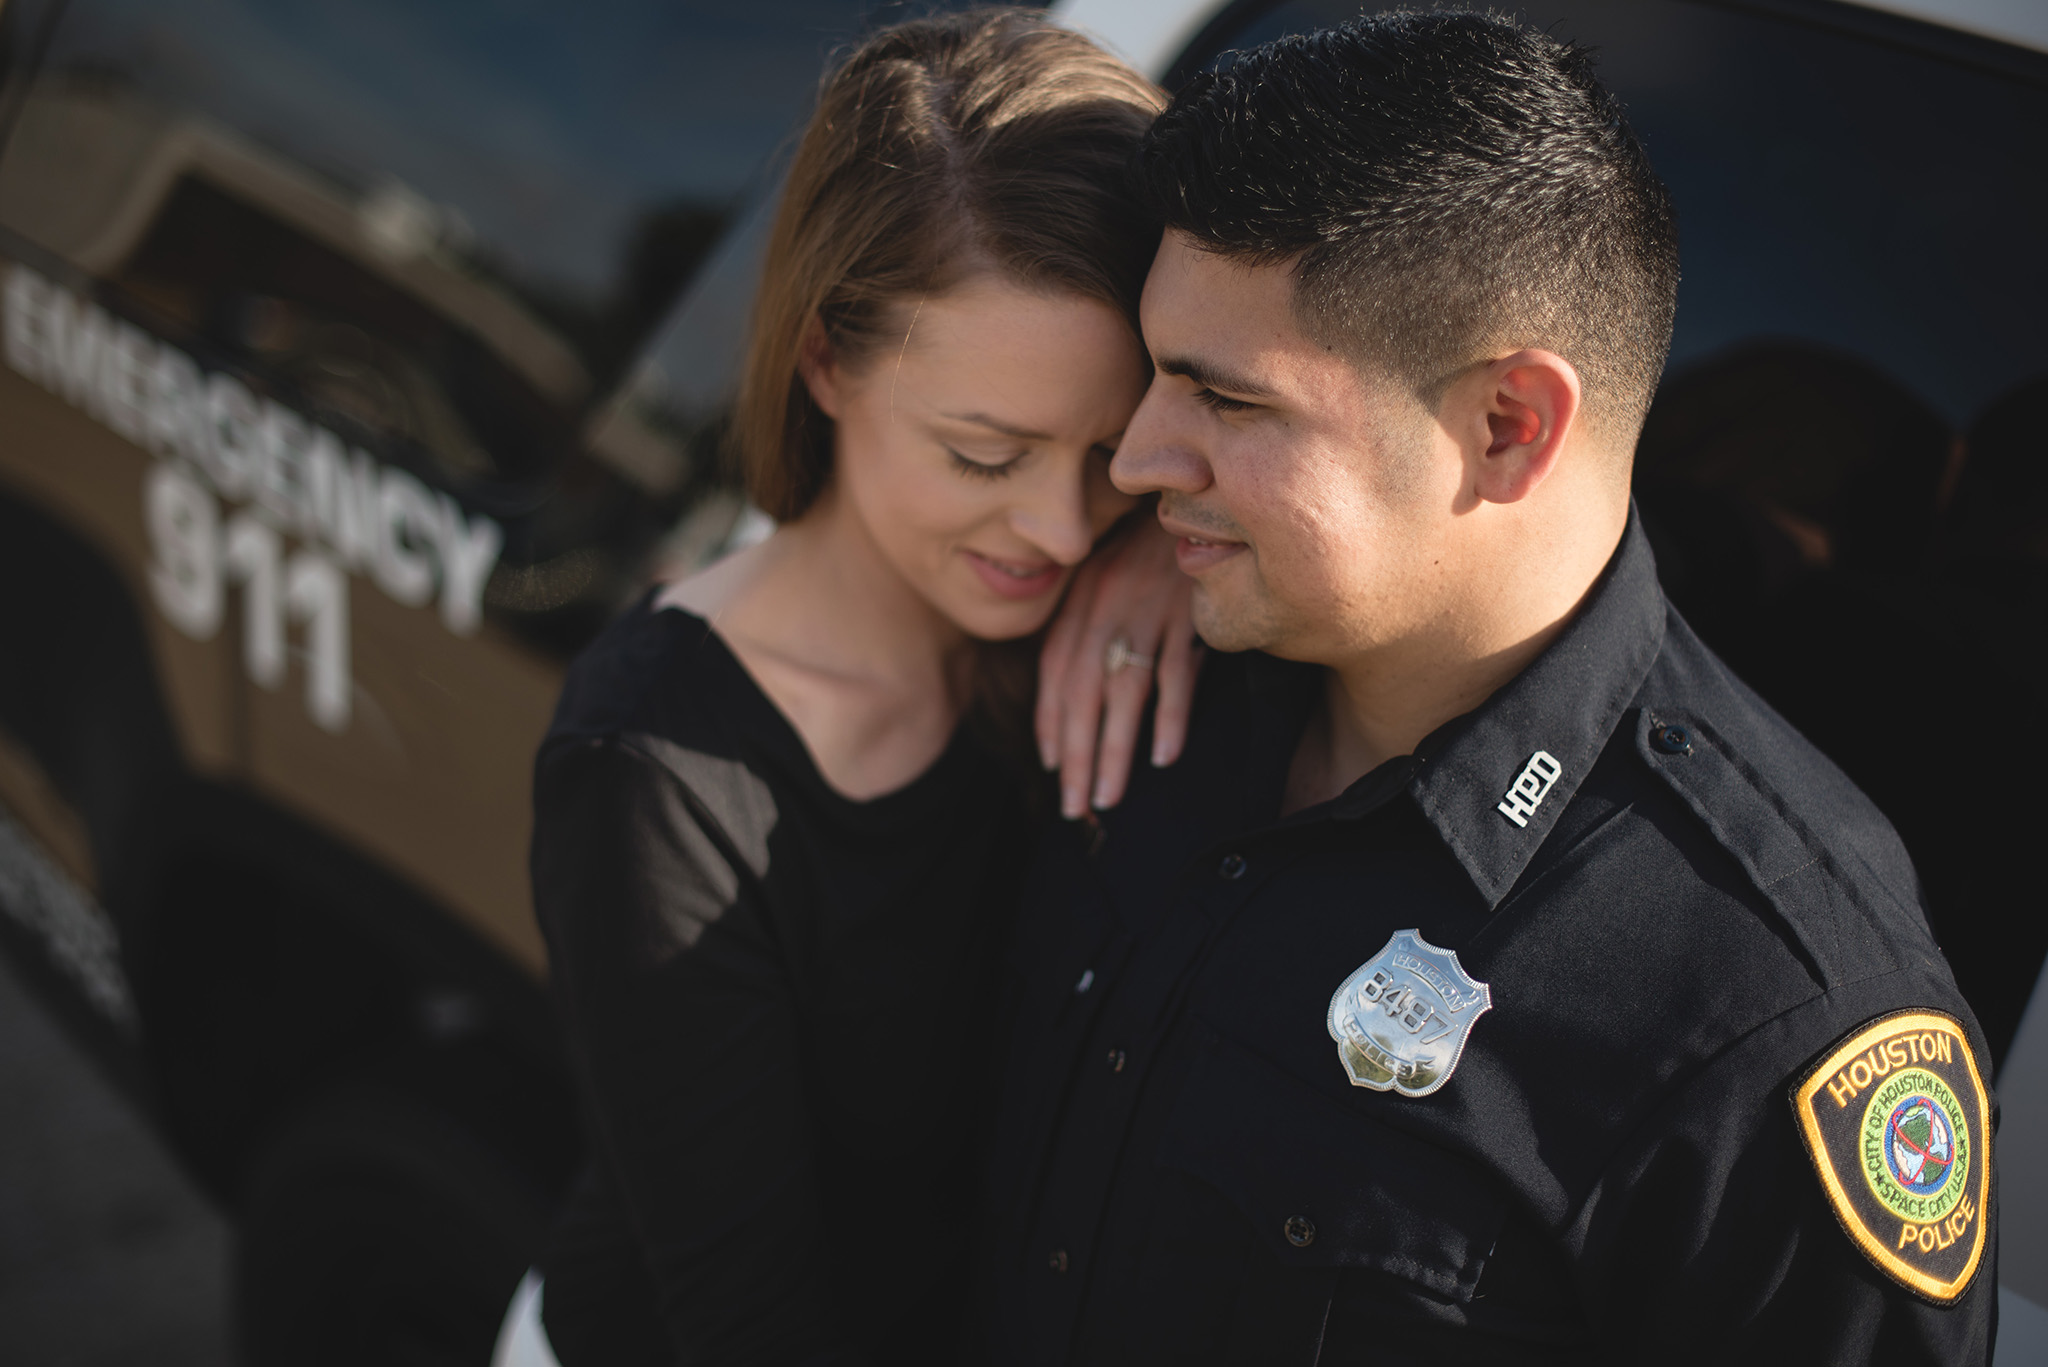 Houston-police-officer-memorial-lifestyle-engagement-photography